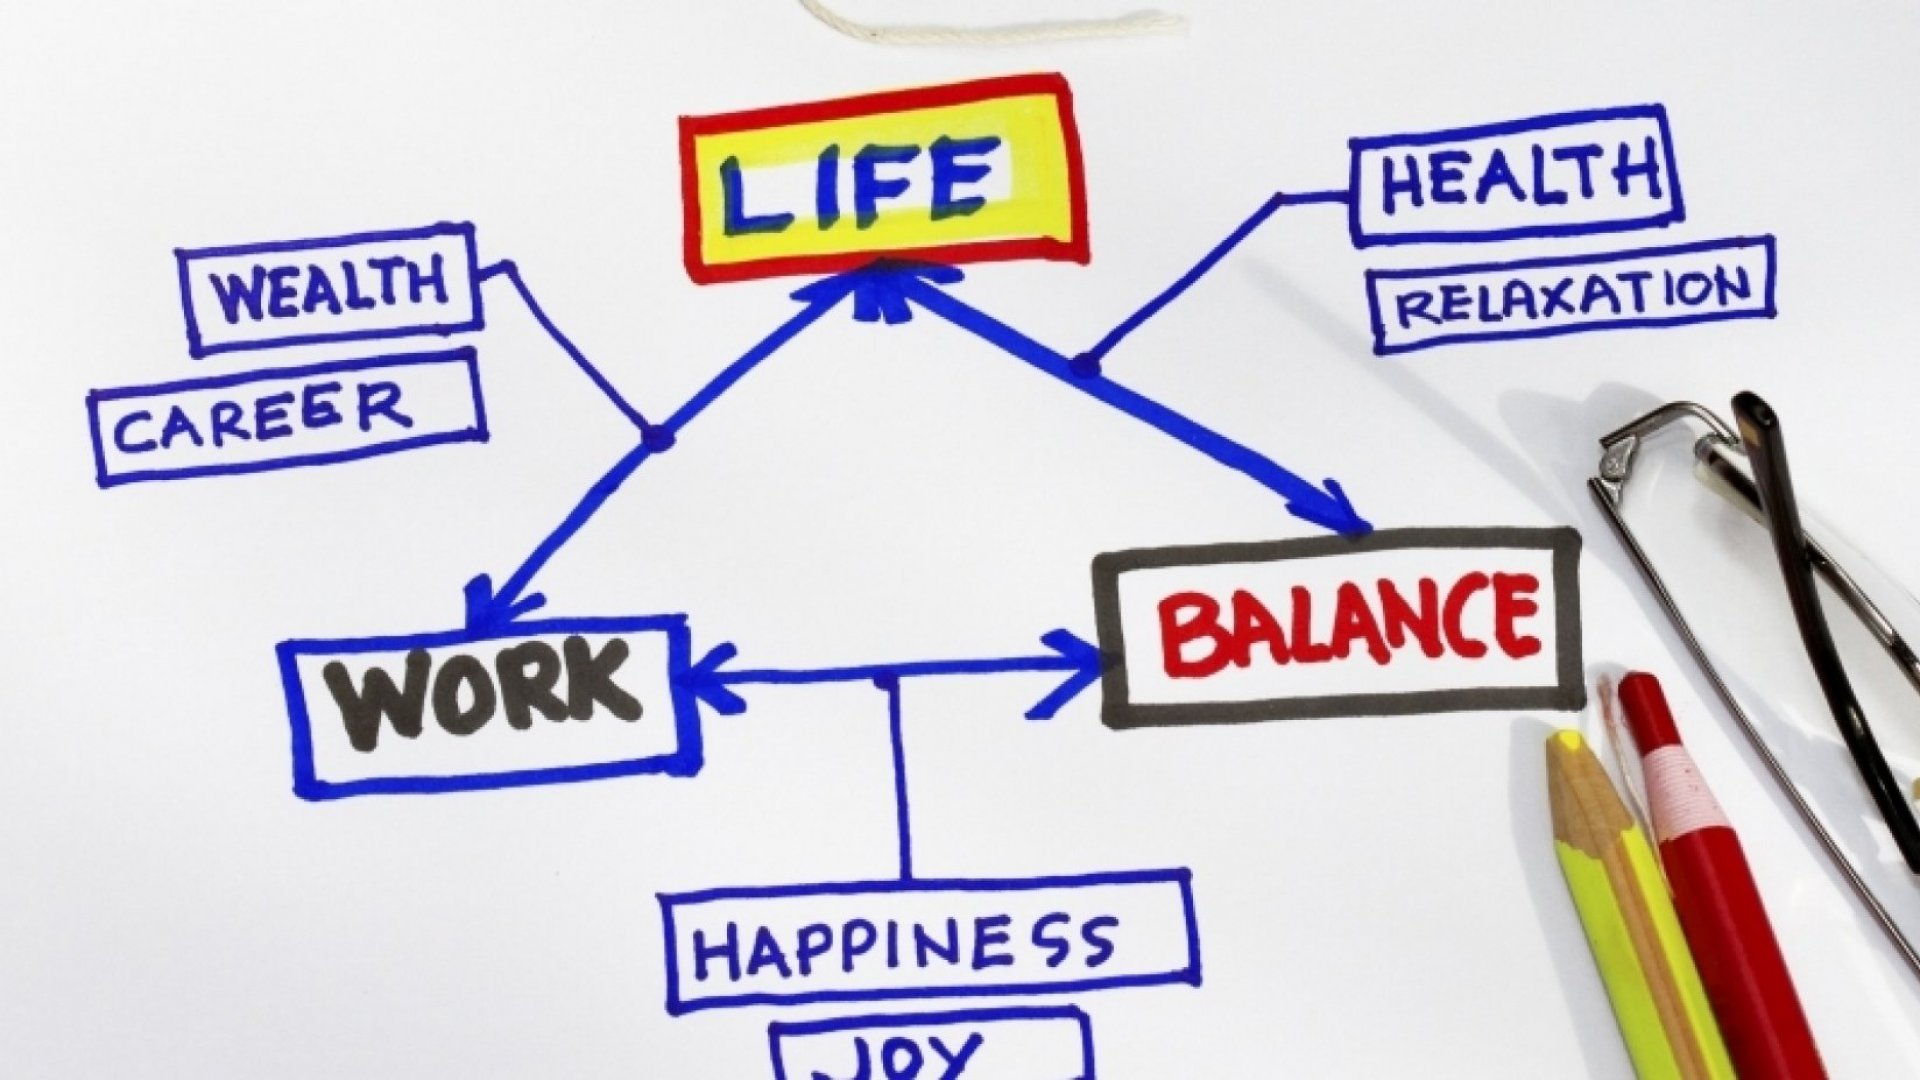 How CEOs Can Help Improve Work-Life Balance in America